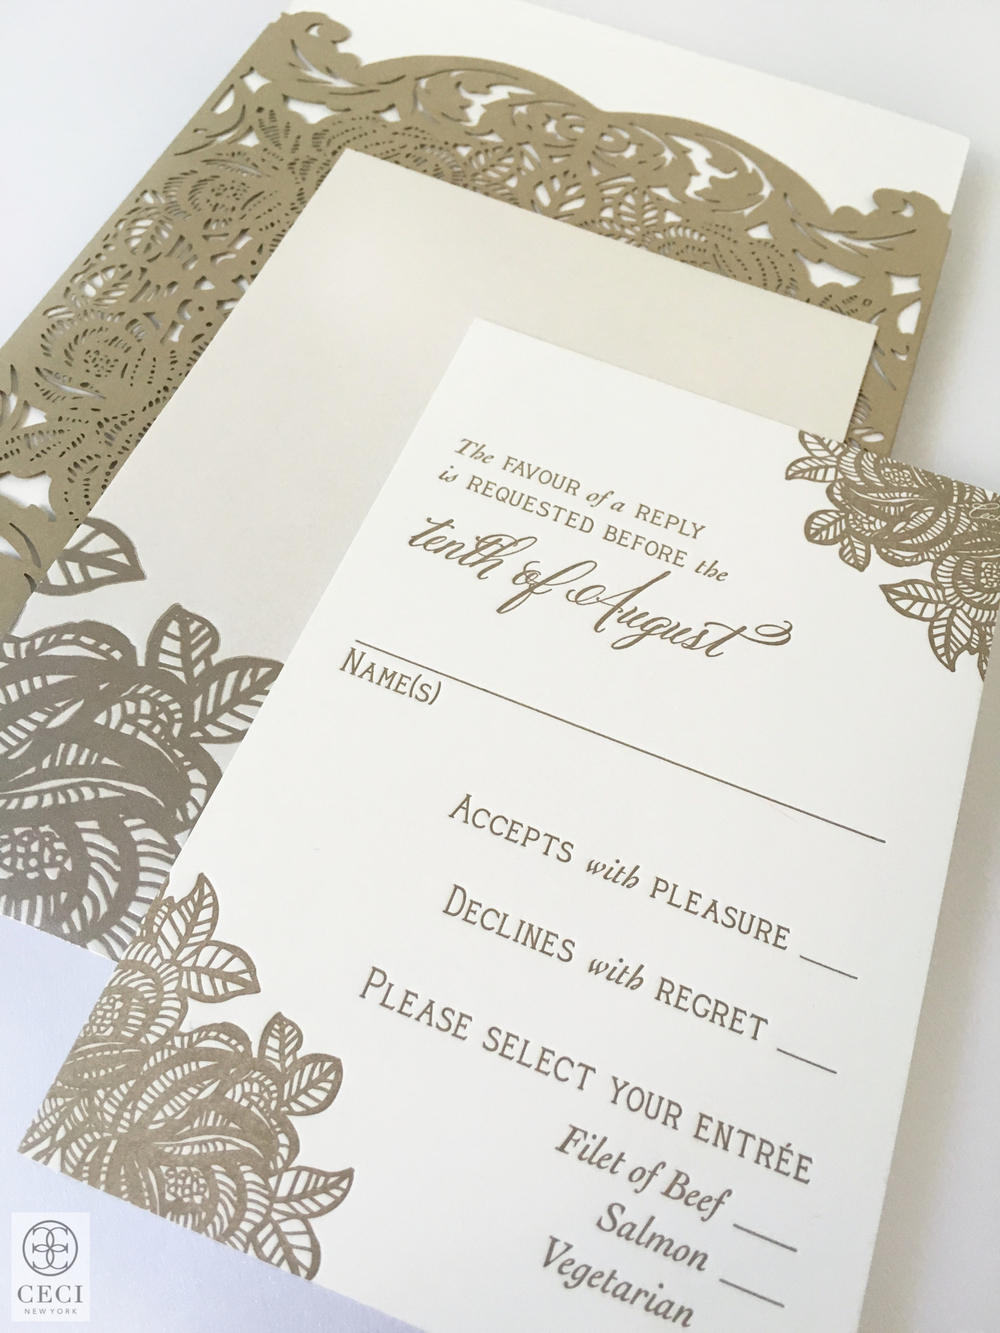 Ceci_New_York_Ceci_Style_Ceci_Johnson_Luxury_Lifestyle_Floral_Lace_Wedding_Letterpress_Inspiration_Design_Custom_Couture_Personalized_Invitations_-14.jpg